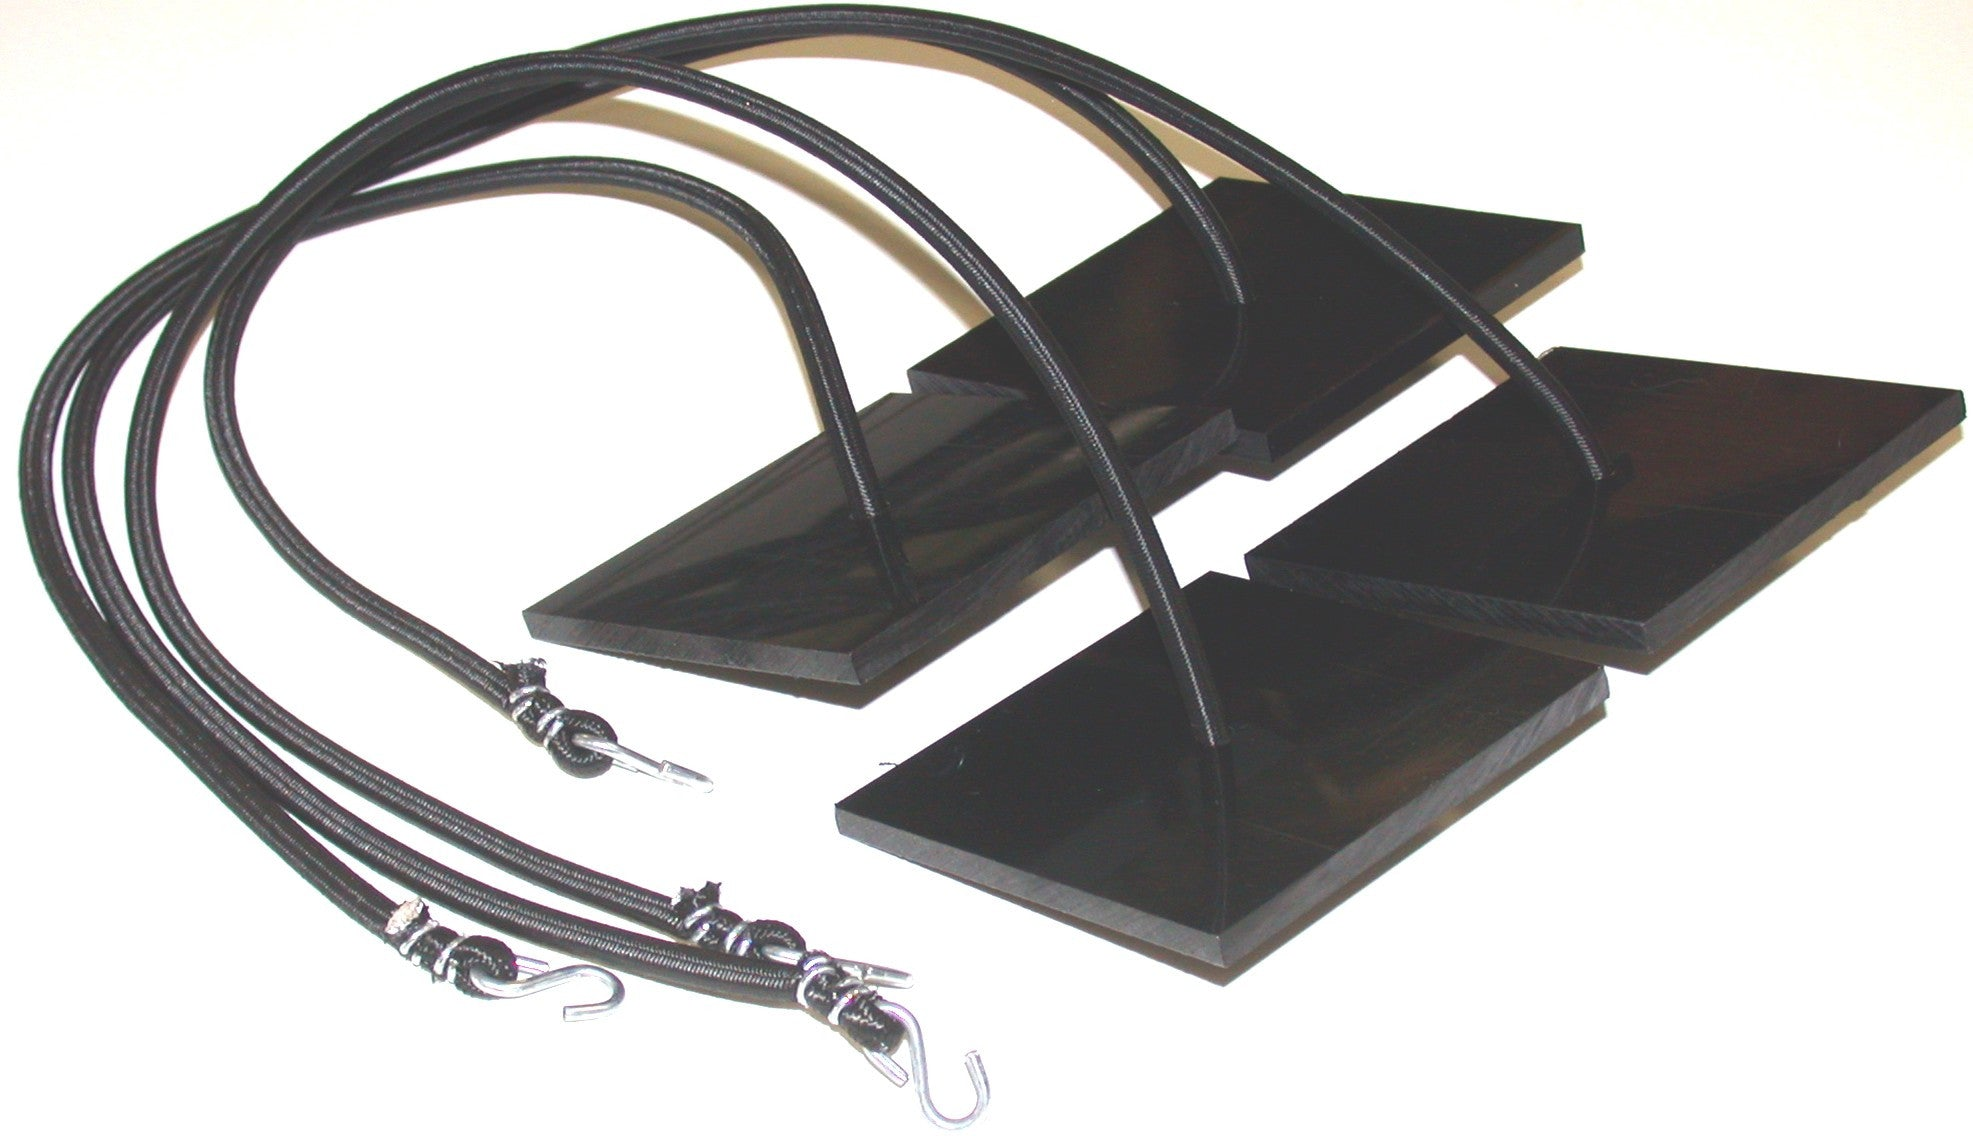 26B-four sand anchor plate set with bungee cord attached